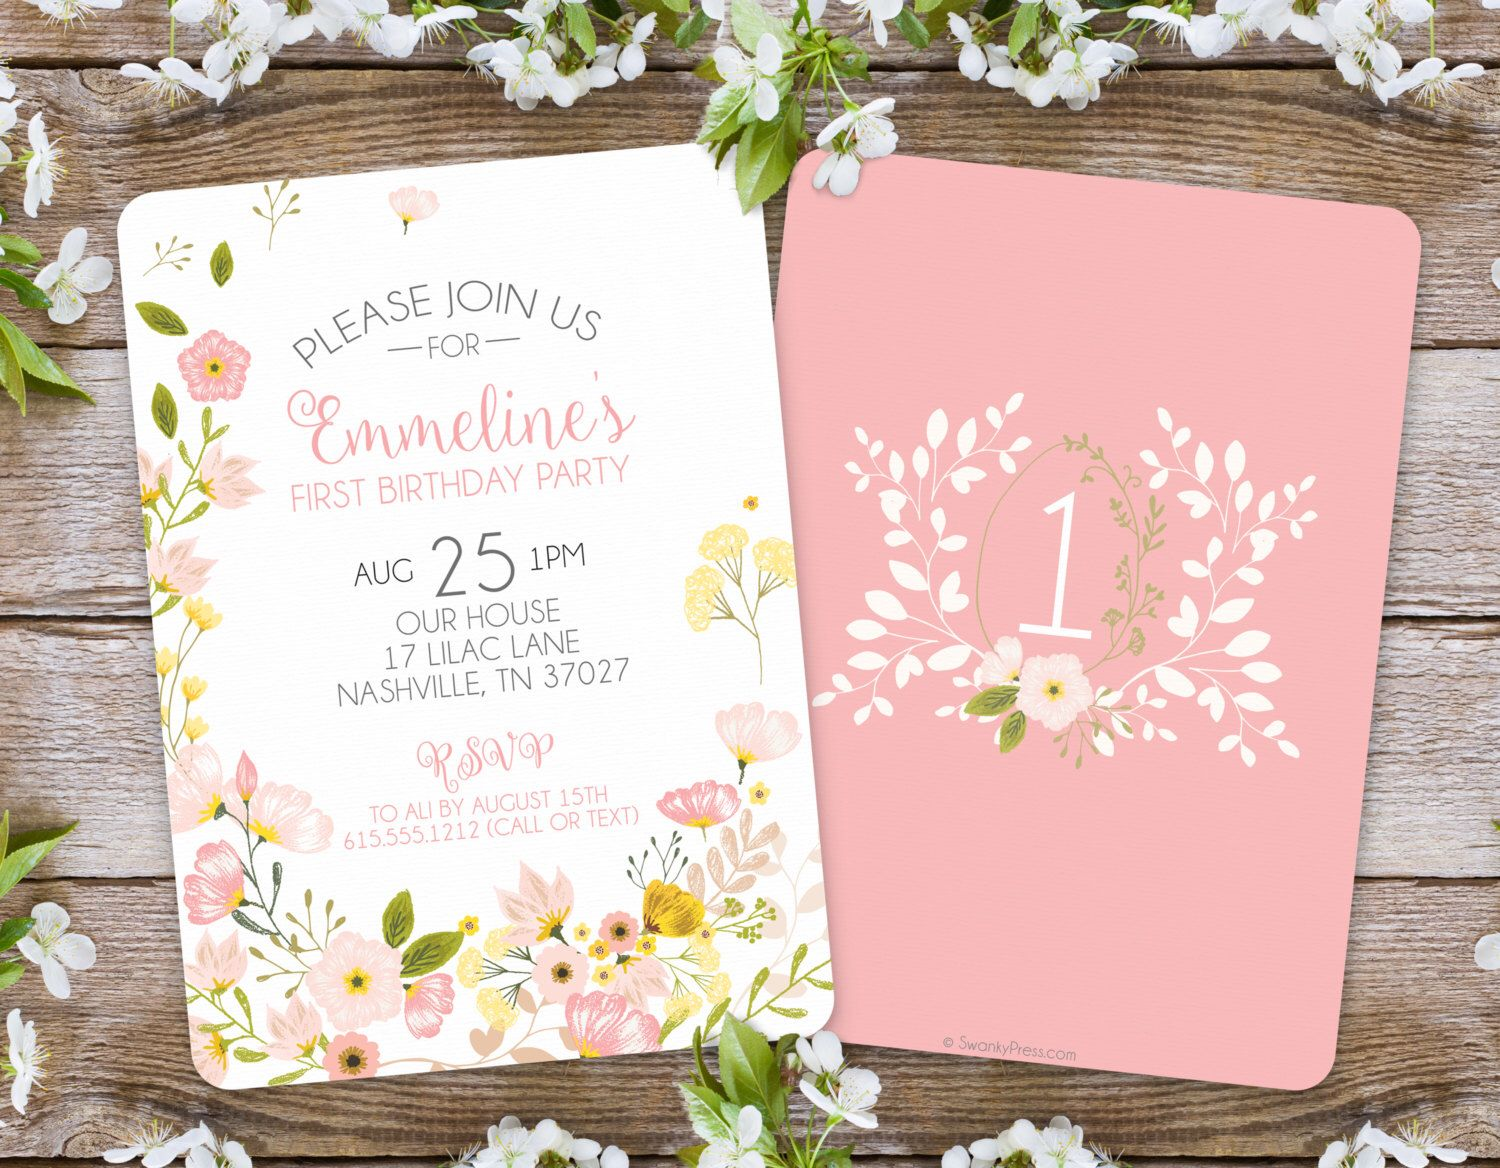 bday party invitation mail%0A  st Birthday Invitation Girl Baby Girl Pink Watercolor Floral Printable  Invitation Kids Birthday Any Age   Pink watercolor  Birthdays and Babies